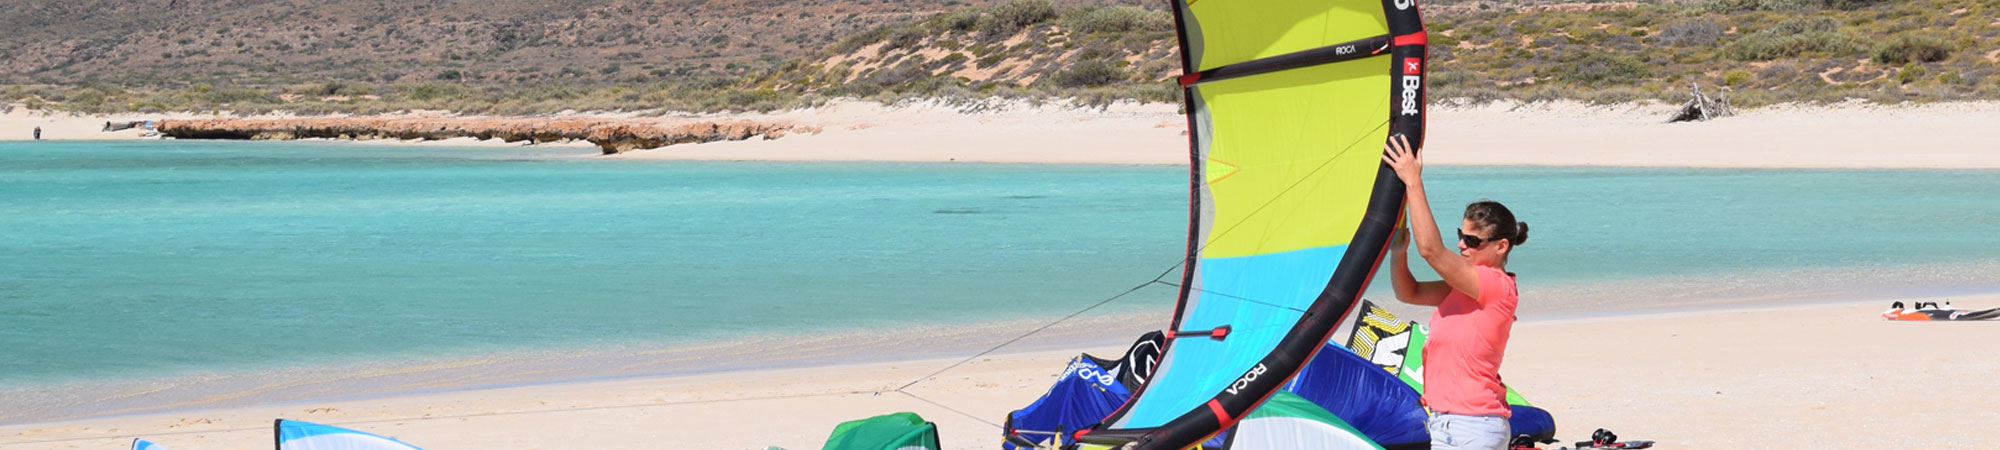 Kitesurf Immersion Lessons